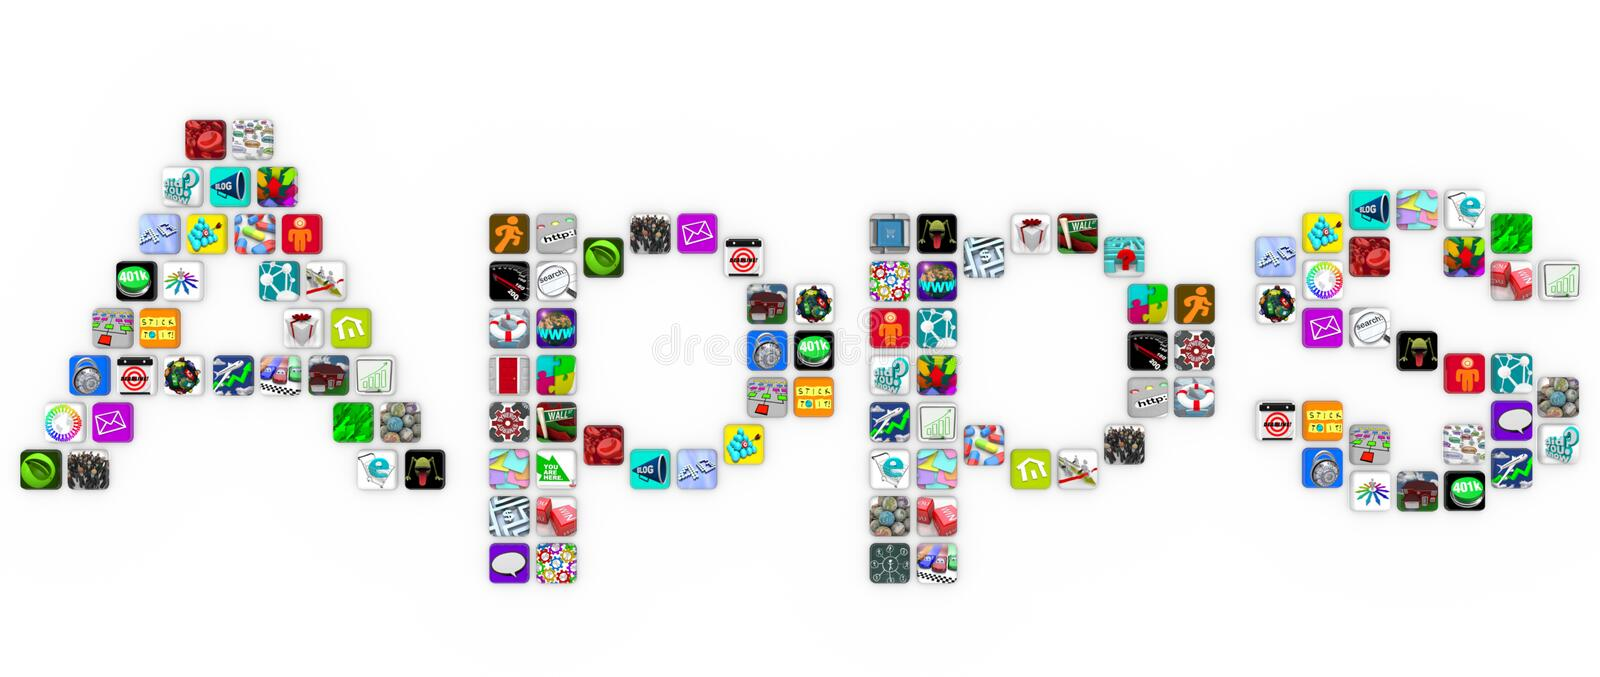 Apps - Tile Icons Form Word on White Background. The word Apps spelled out in app icons on a white background